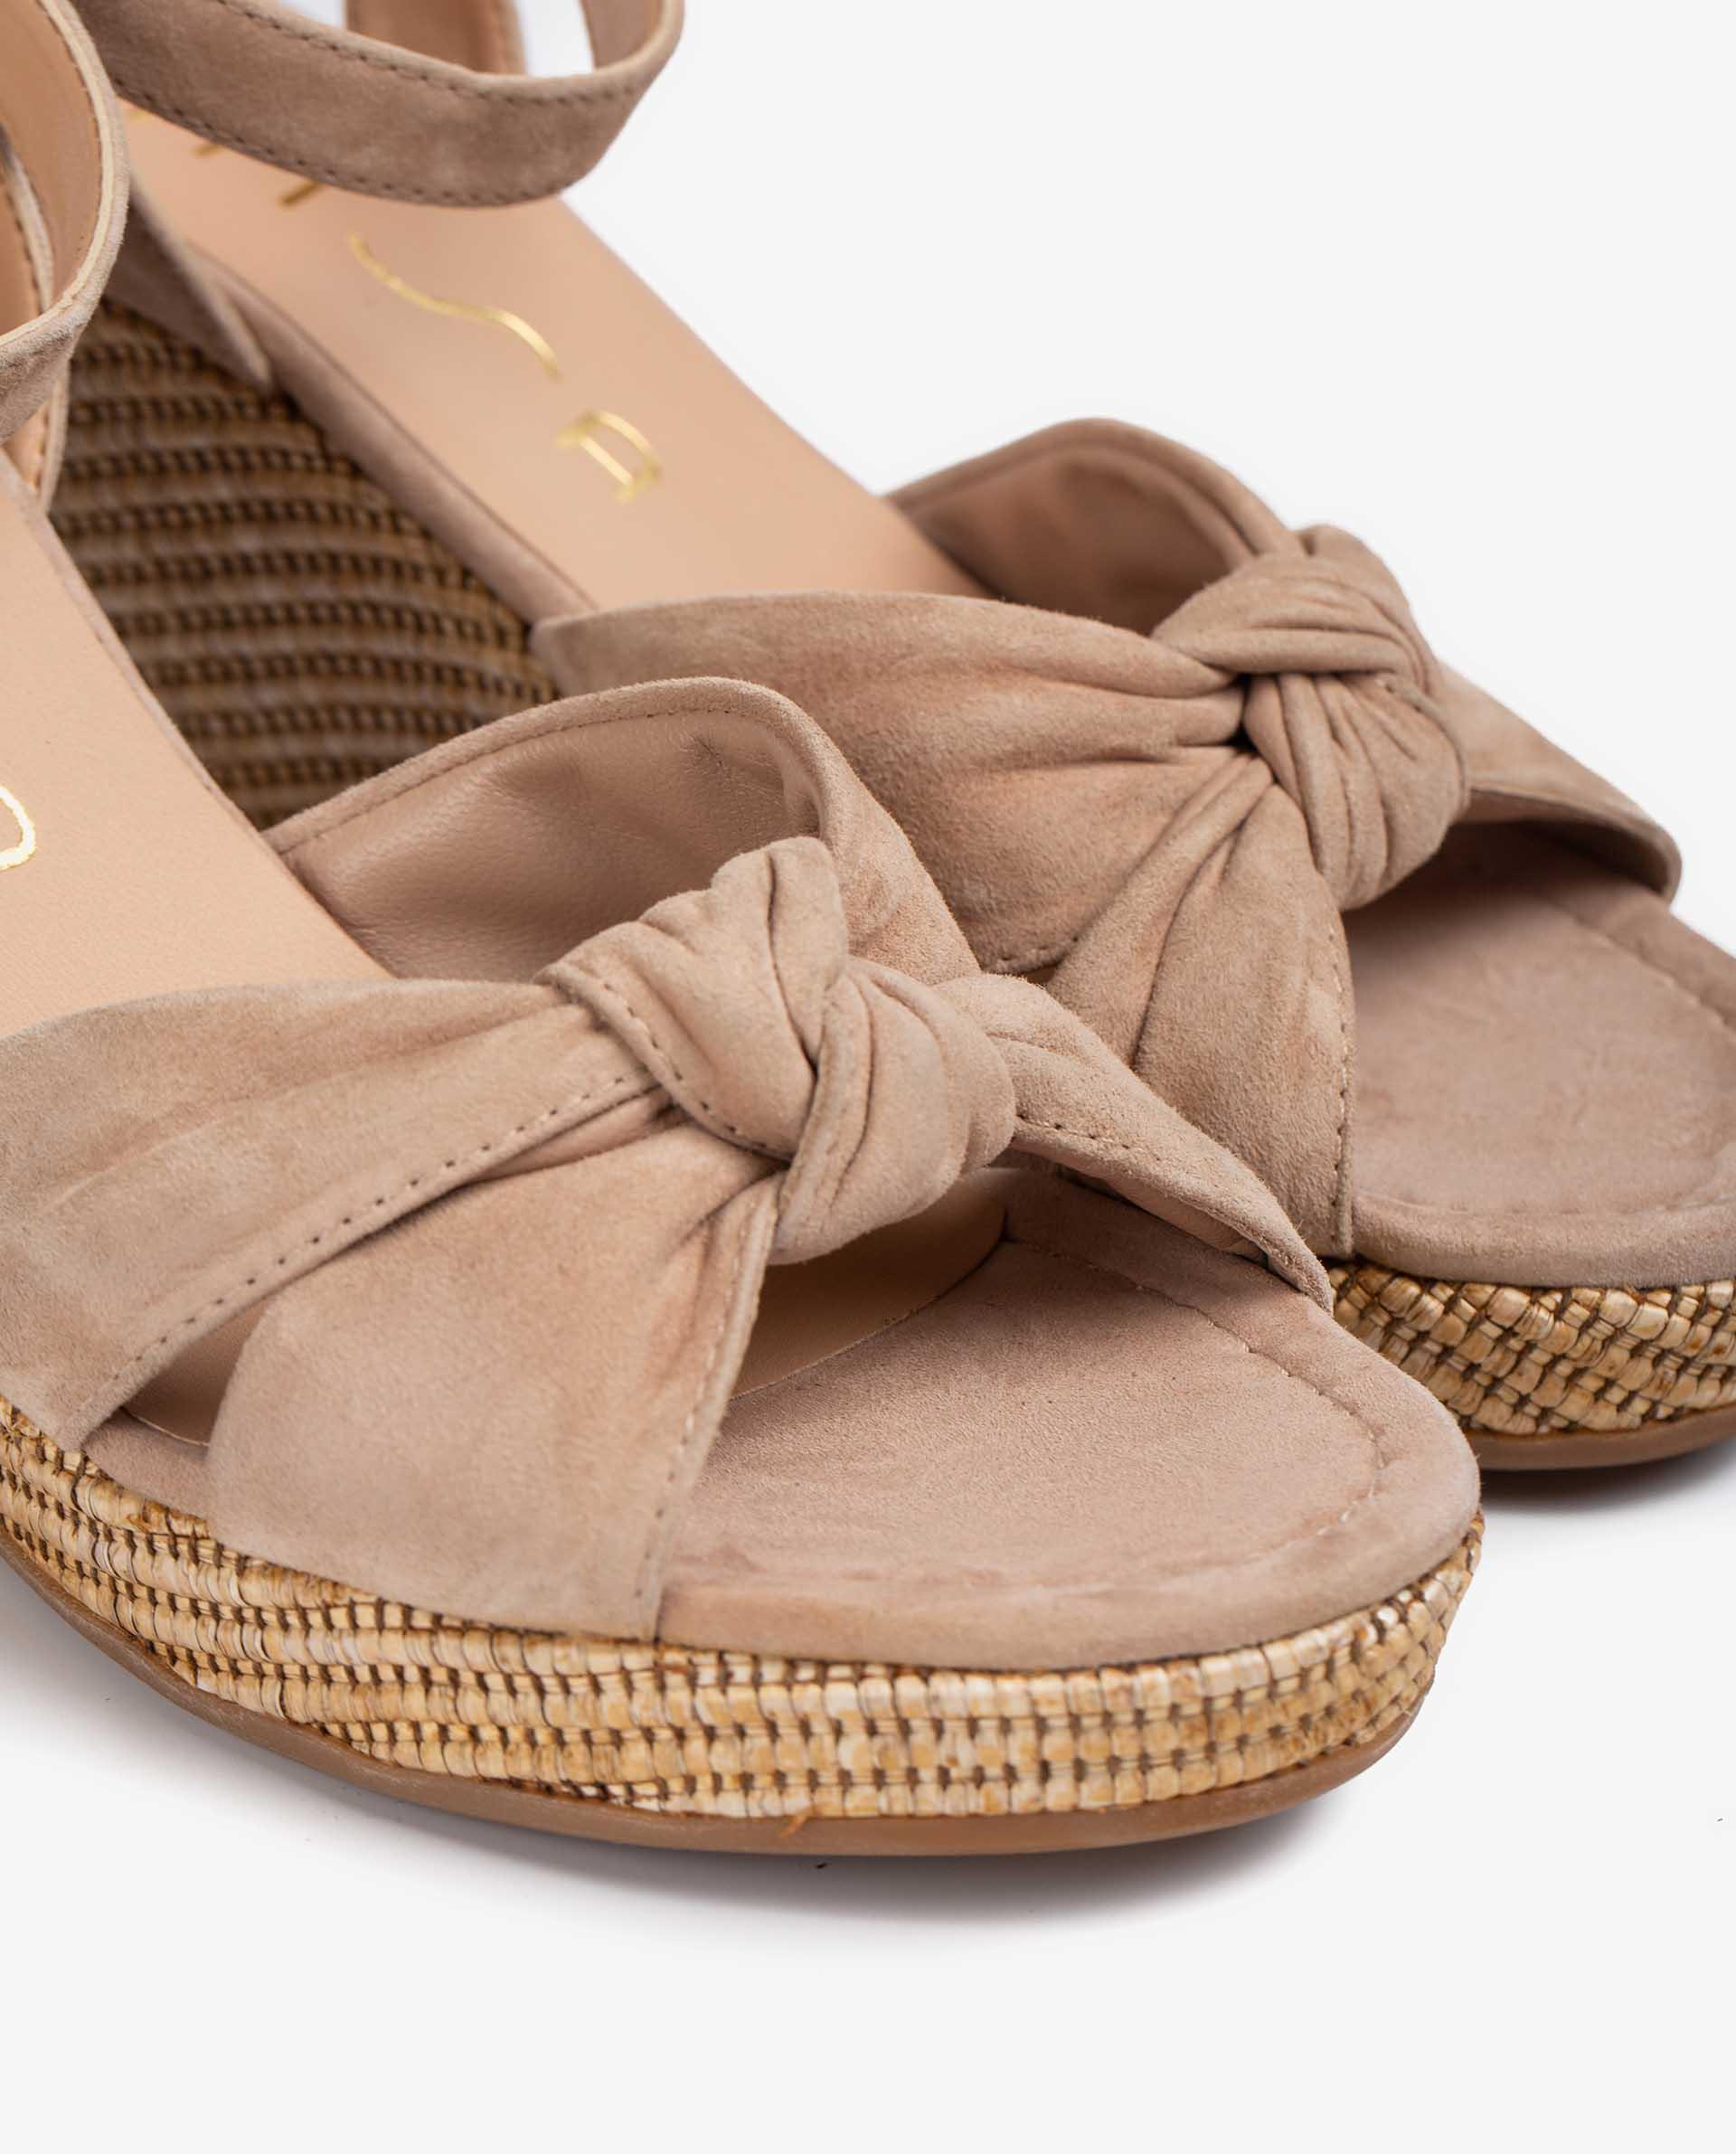 UNISA Kid suede sandals with straps tied up in a knot LAZKAO_KS 2